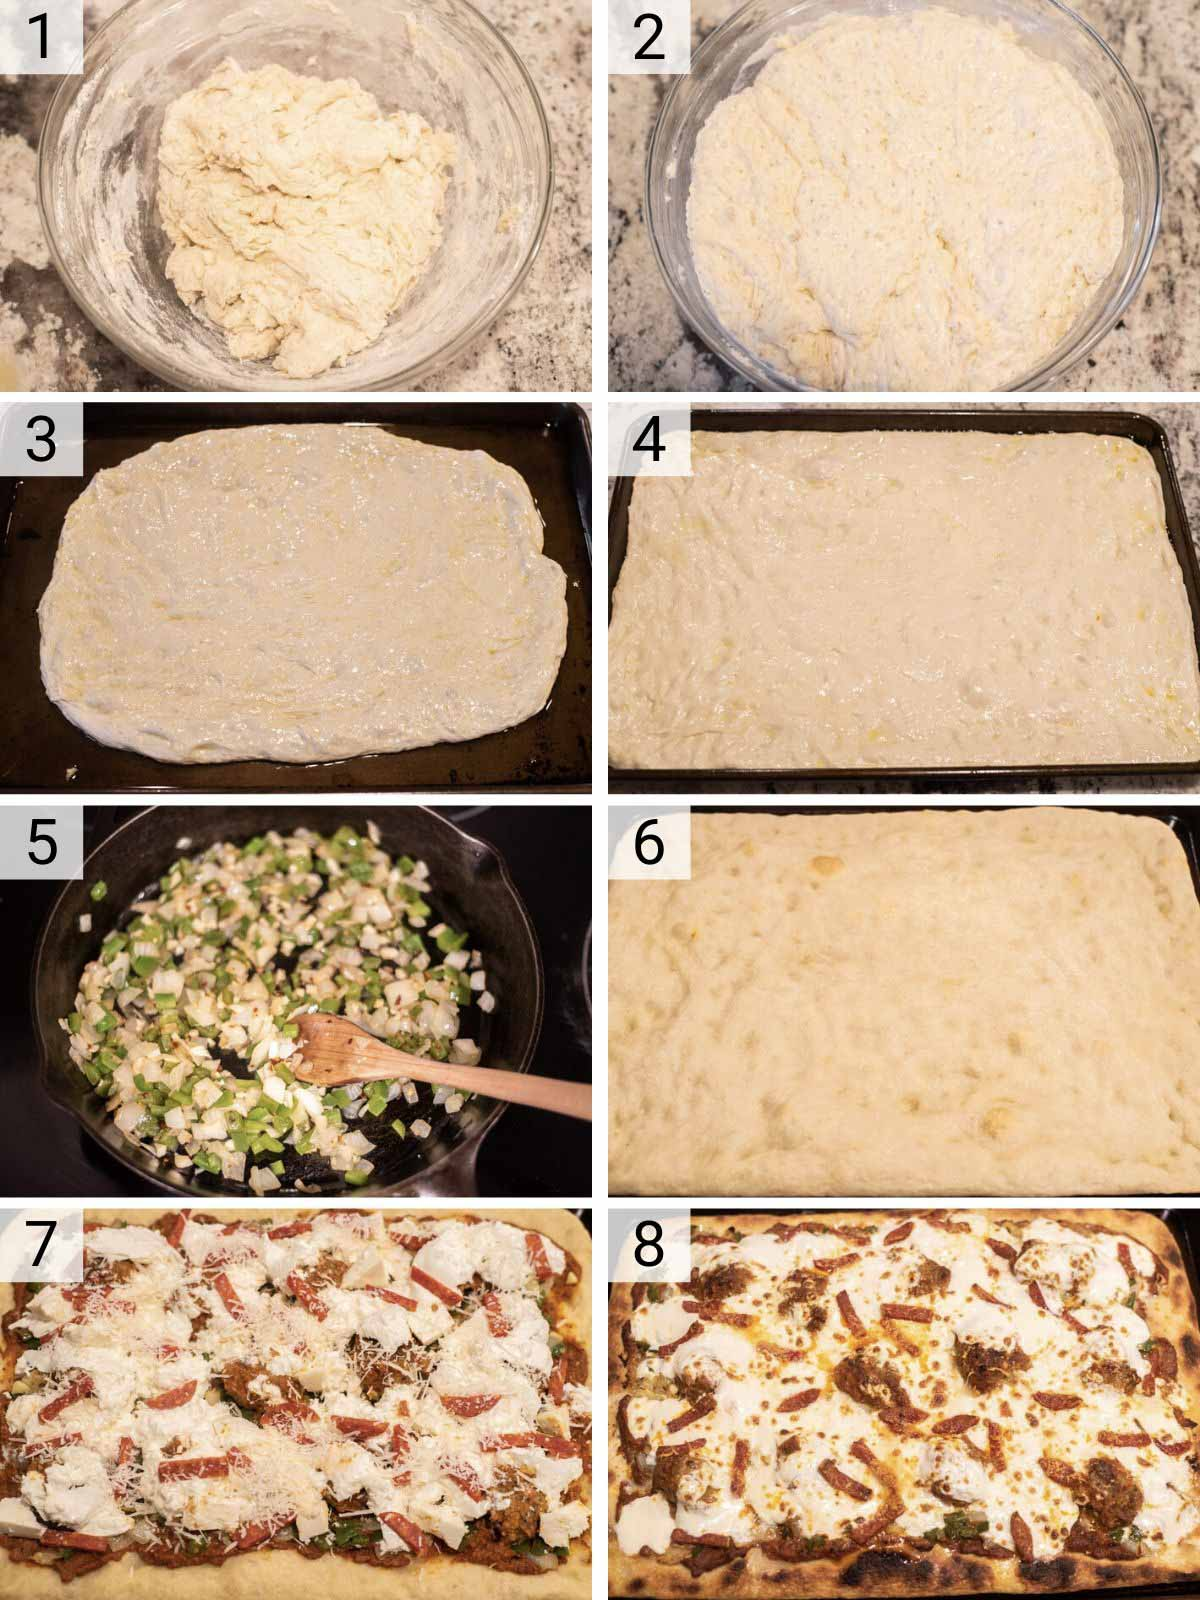 process shots of how to make Sicilian-style pizza